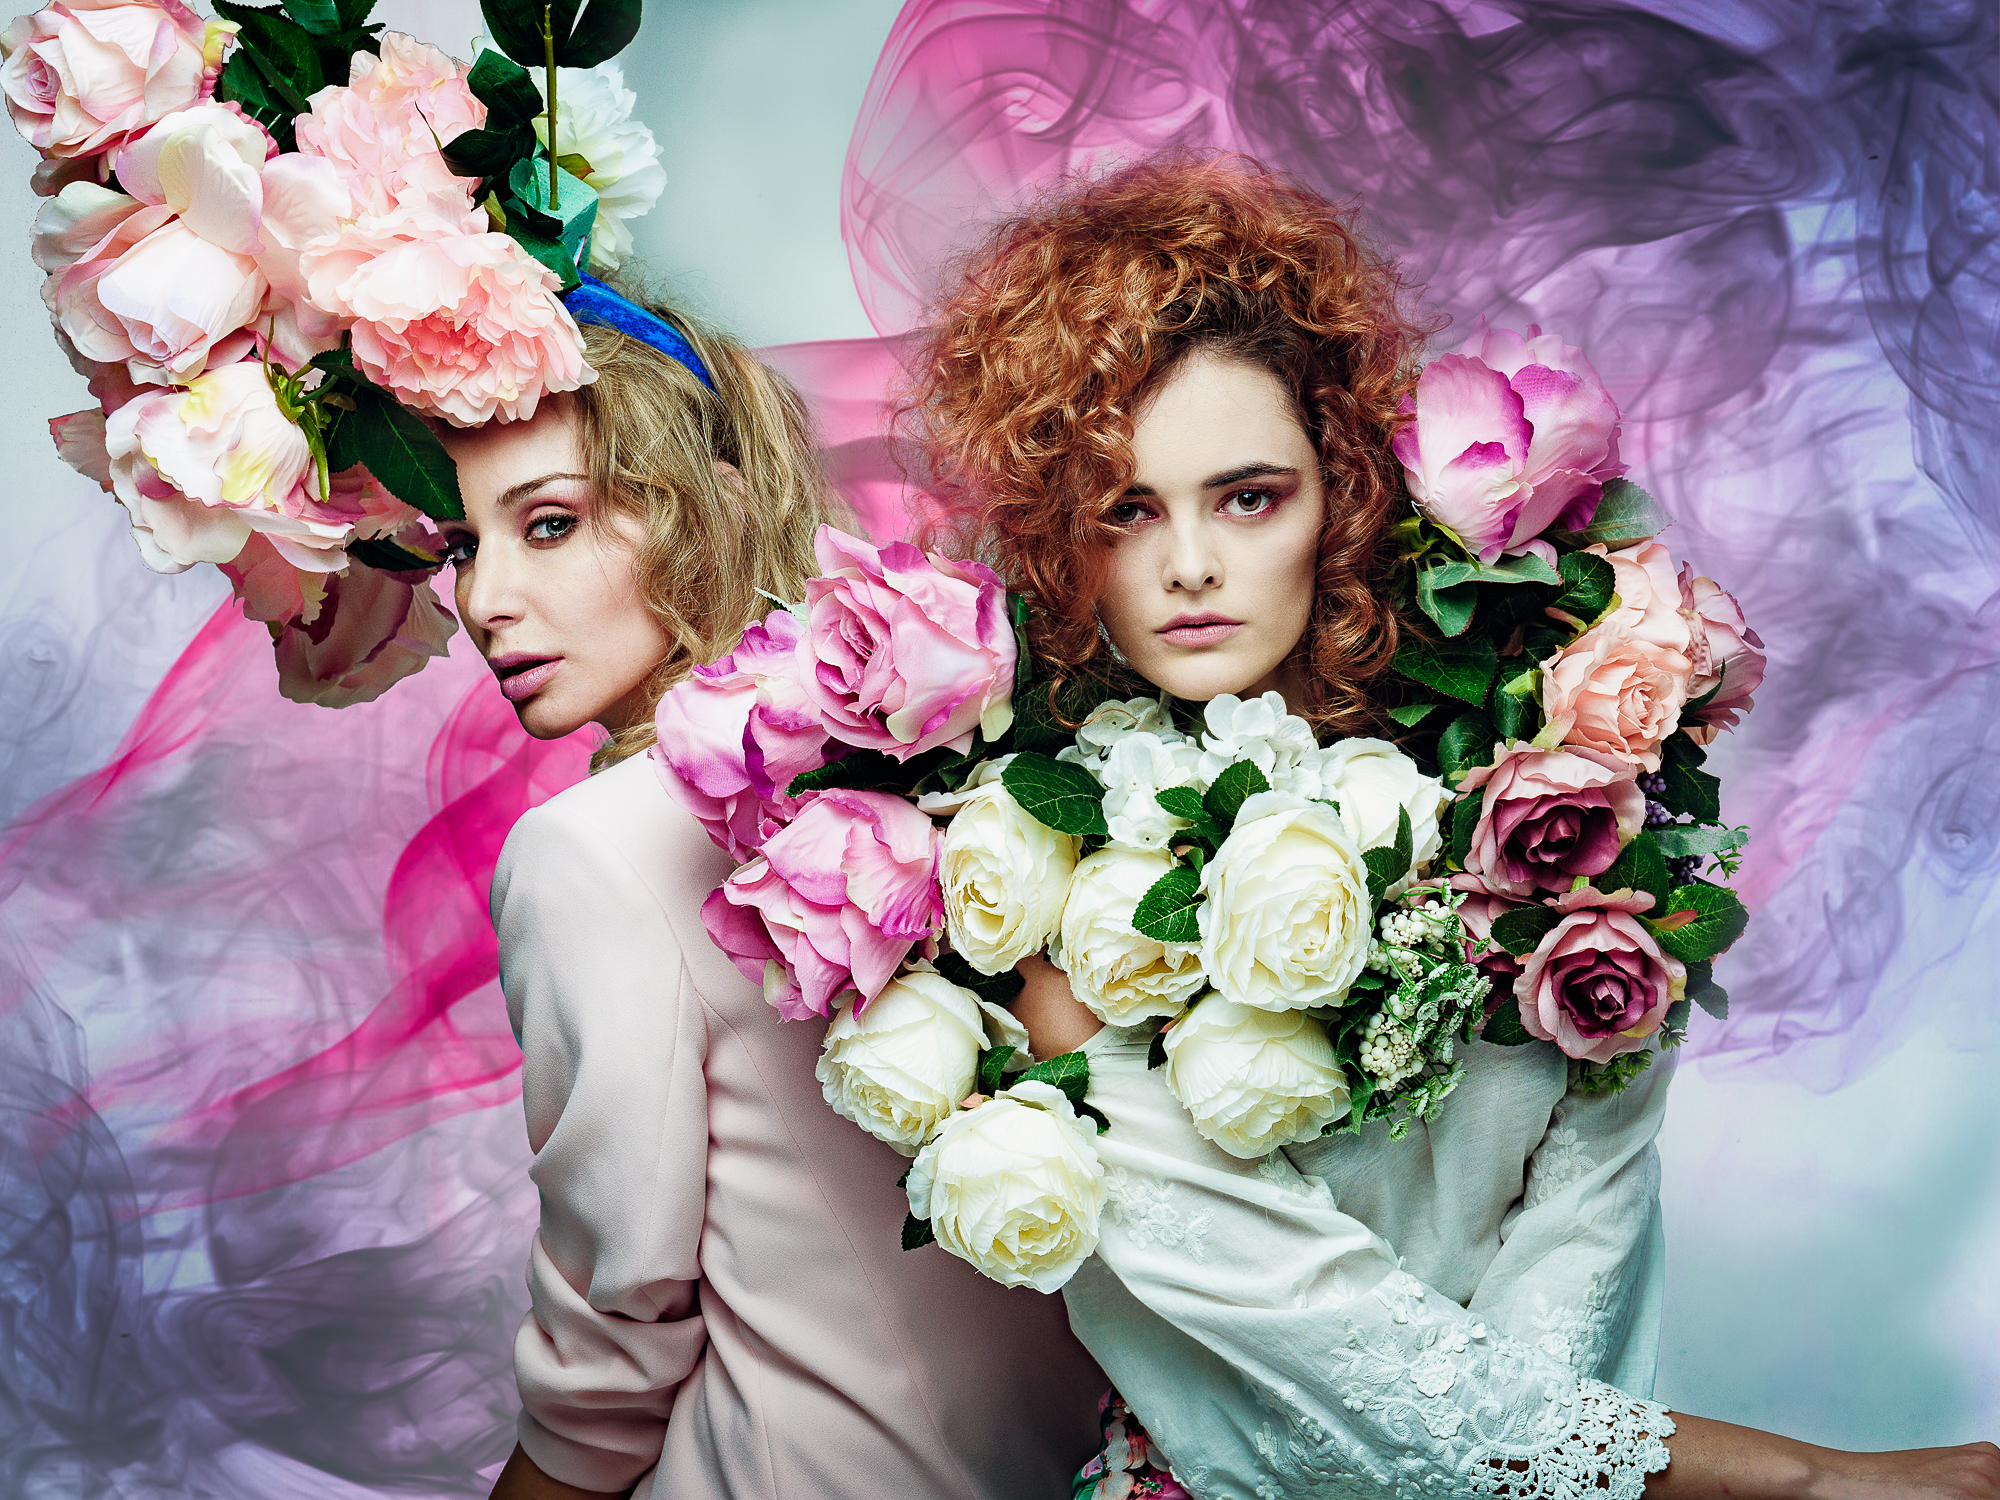 IZABELLA STANCICU and LANA SHOK en Floral Power